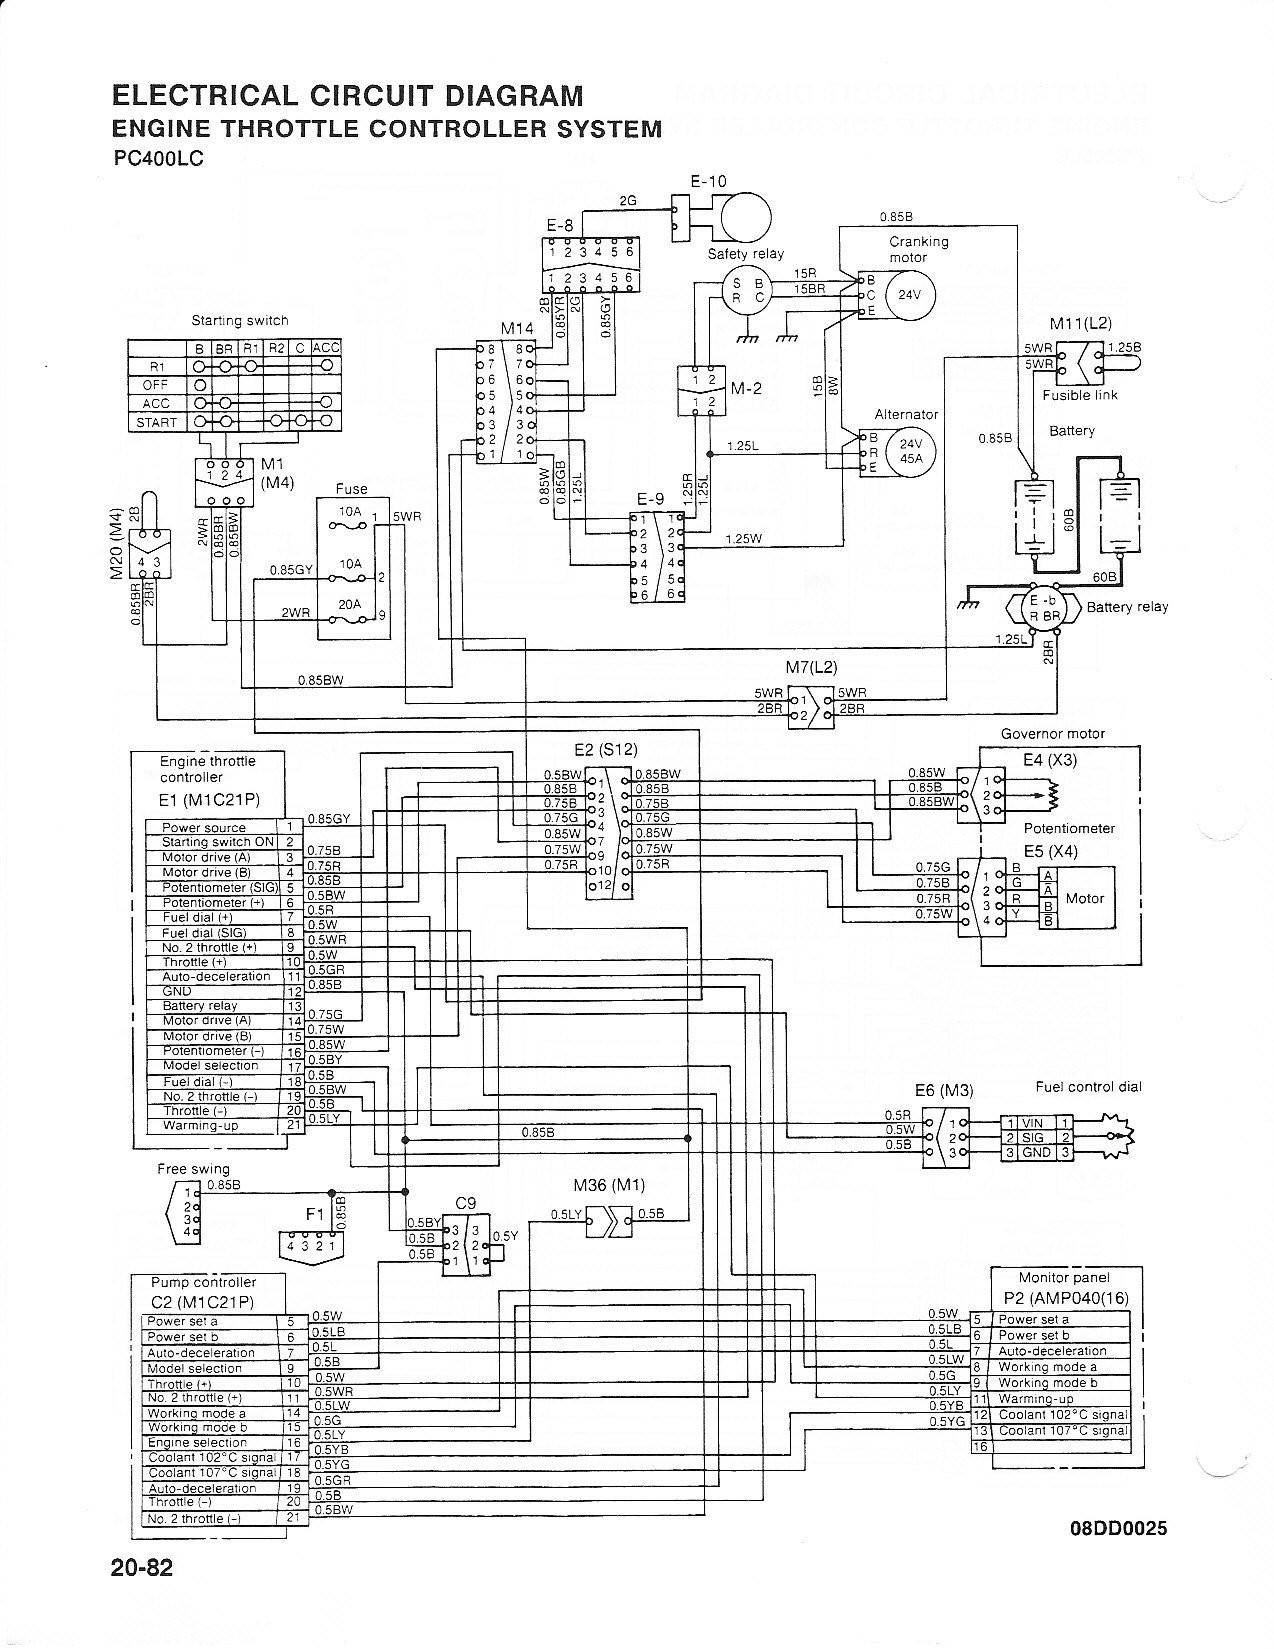 Freightliner Air System Diagram Freightliner M2 Wiring Diagram Fresh Freightliner M2 Wiring Diagram Of Freightliner Air System Diagram